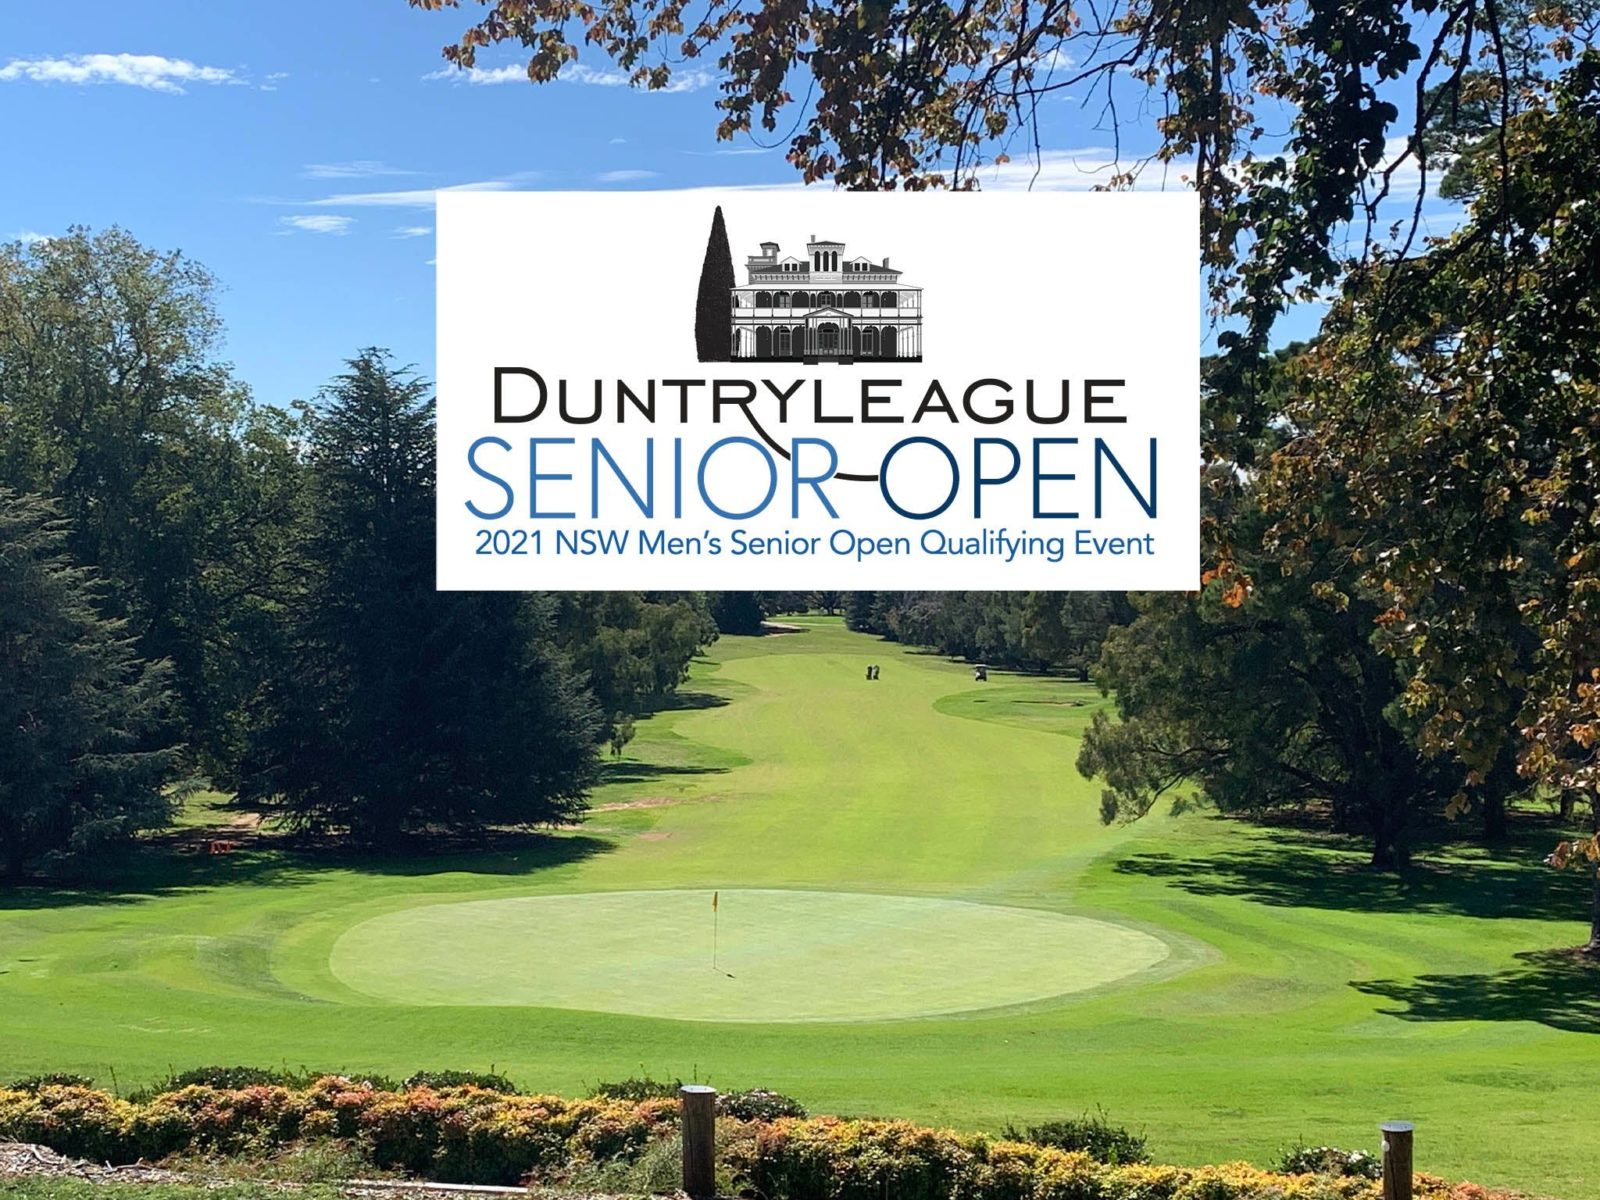 Duntryleague Senior Open